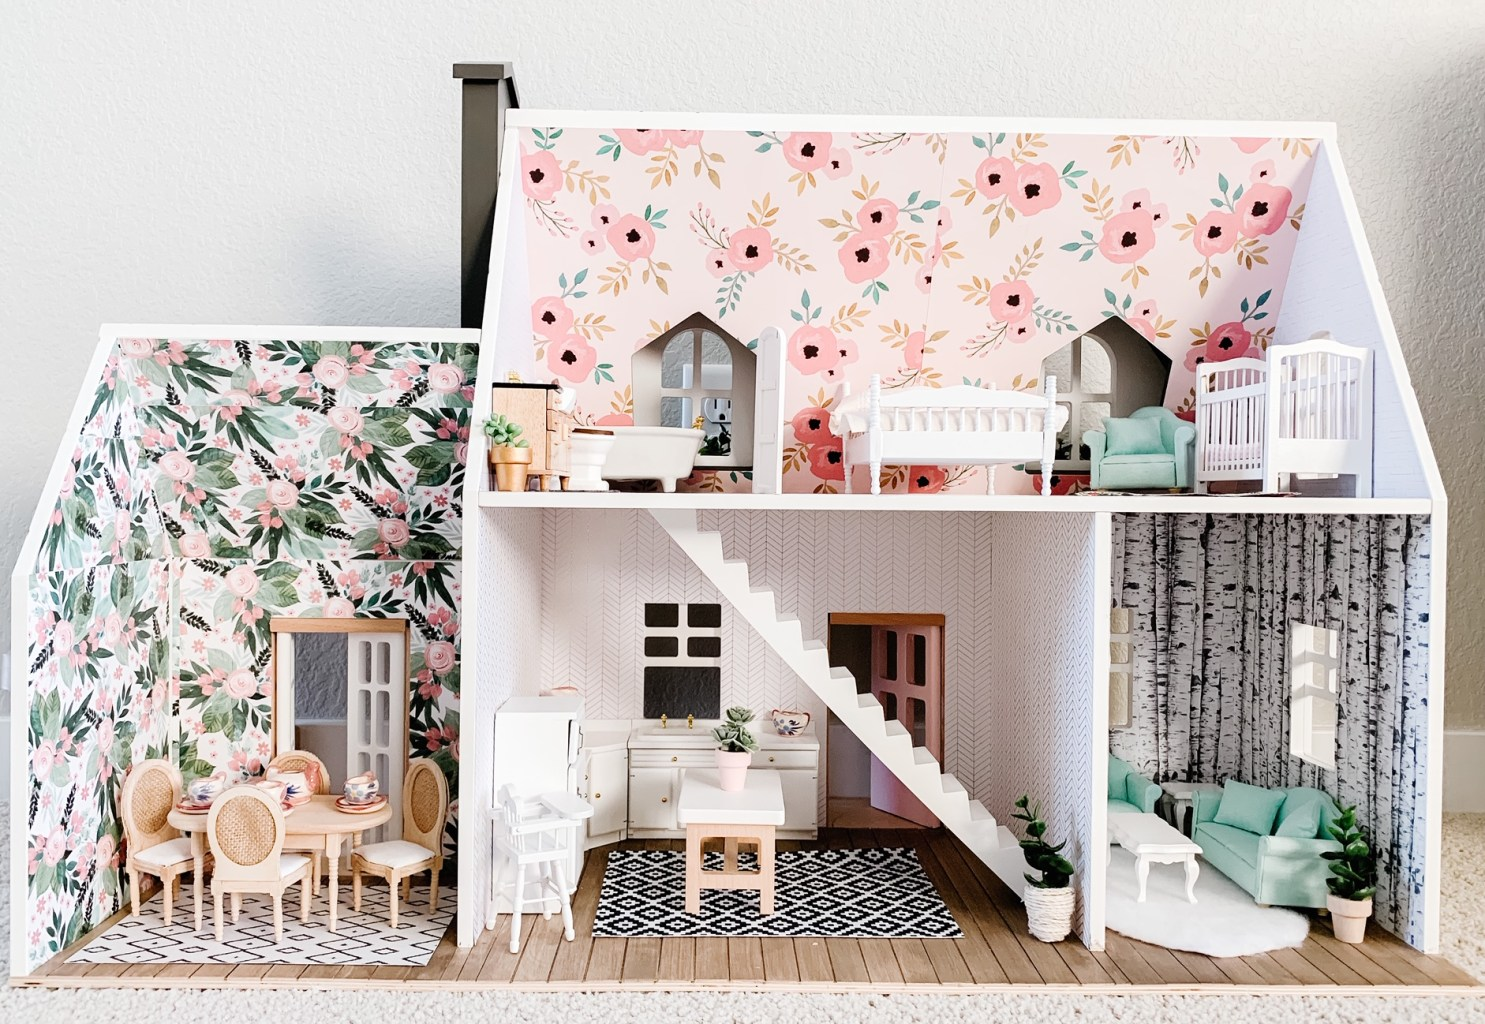 Target Hearth and Hand Dollhouse with wallpaper and wood flooring.